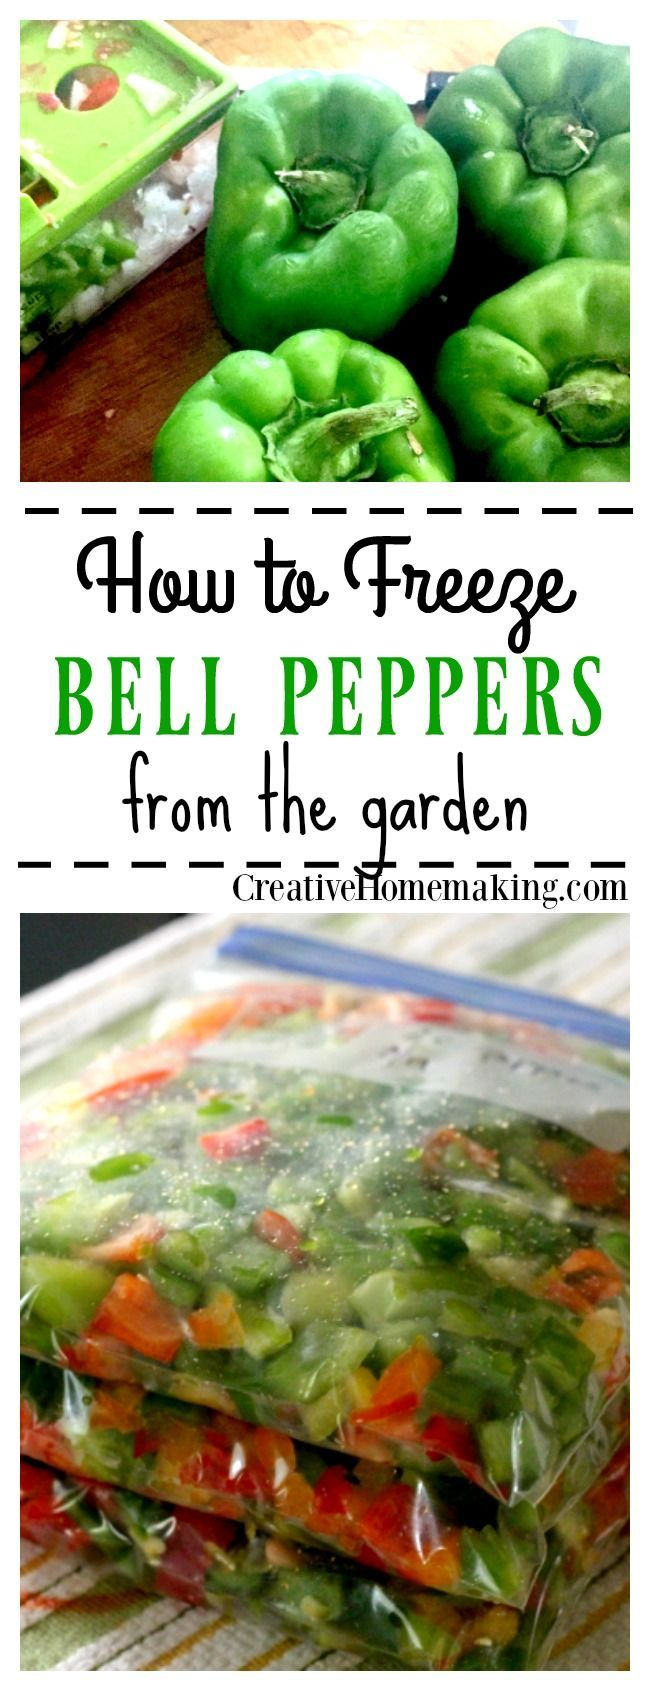 How to freeze green peppers for later use